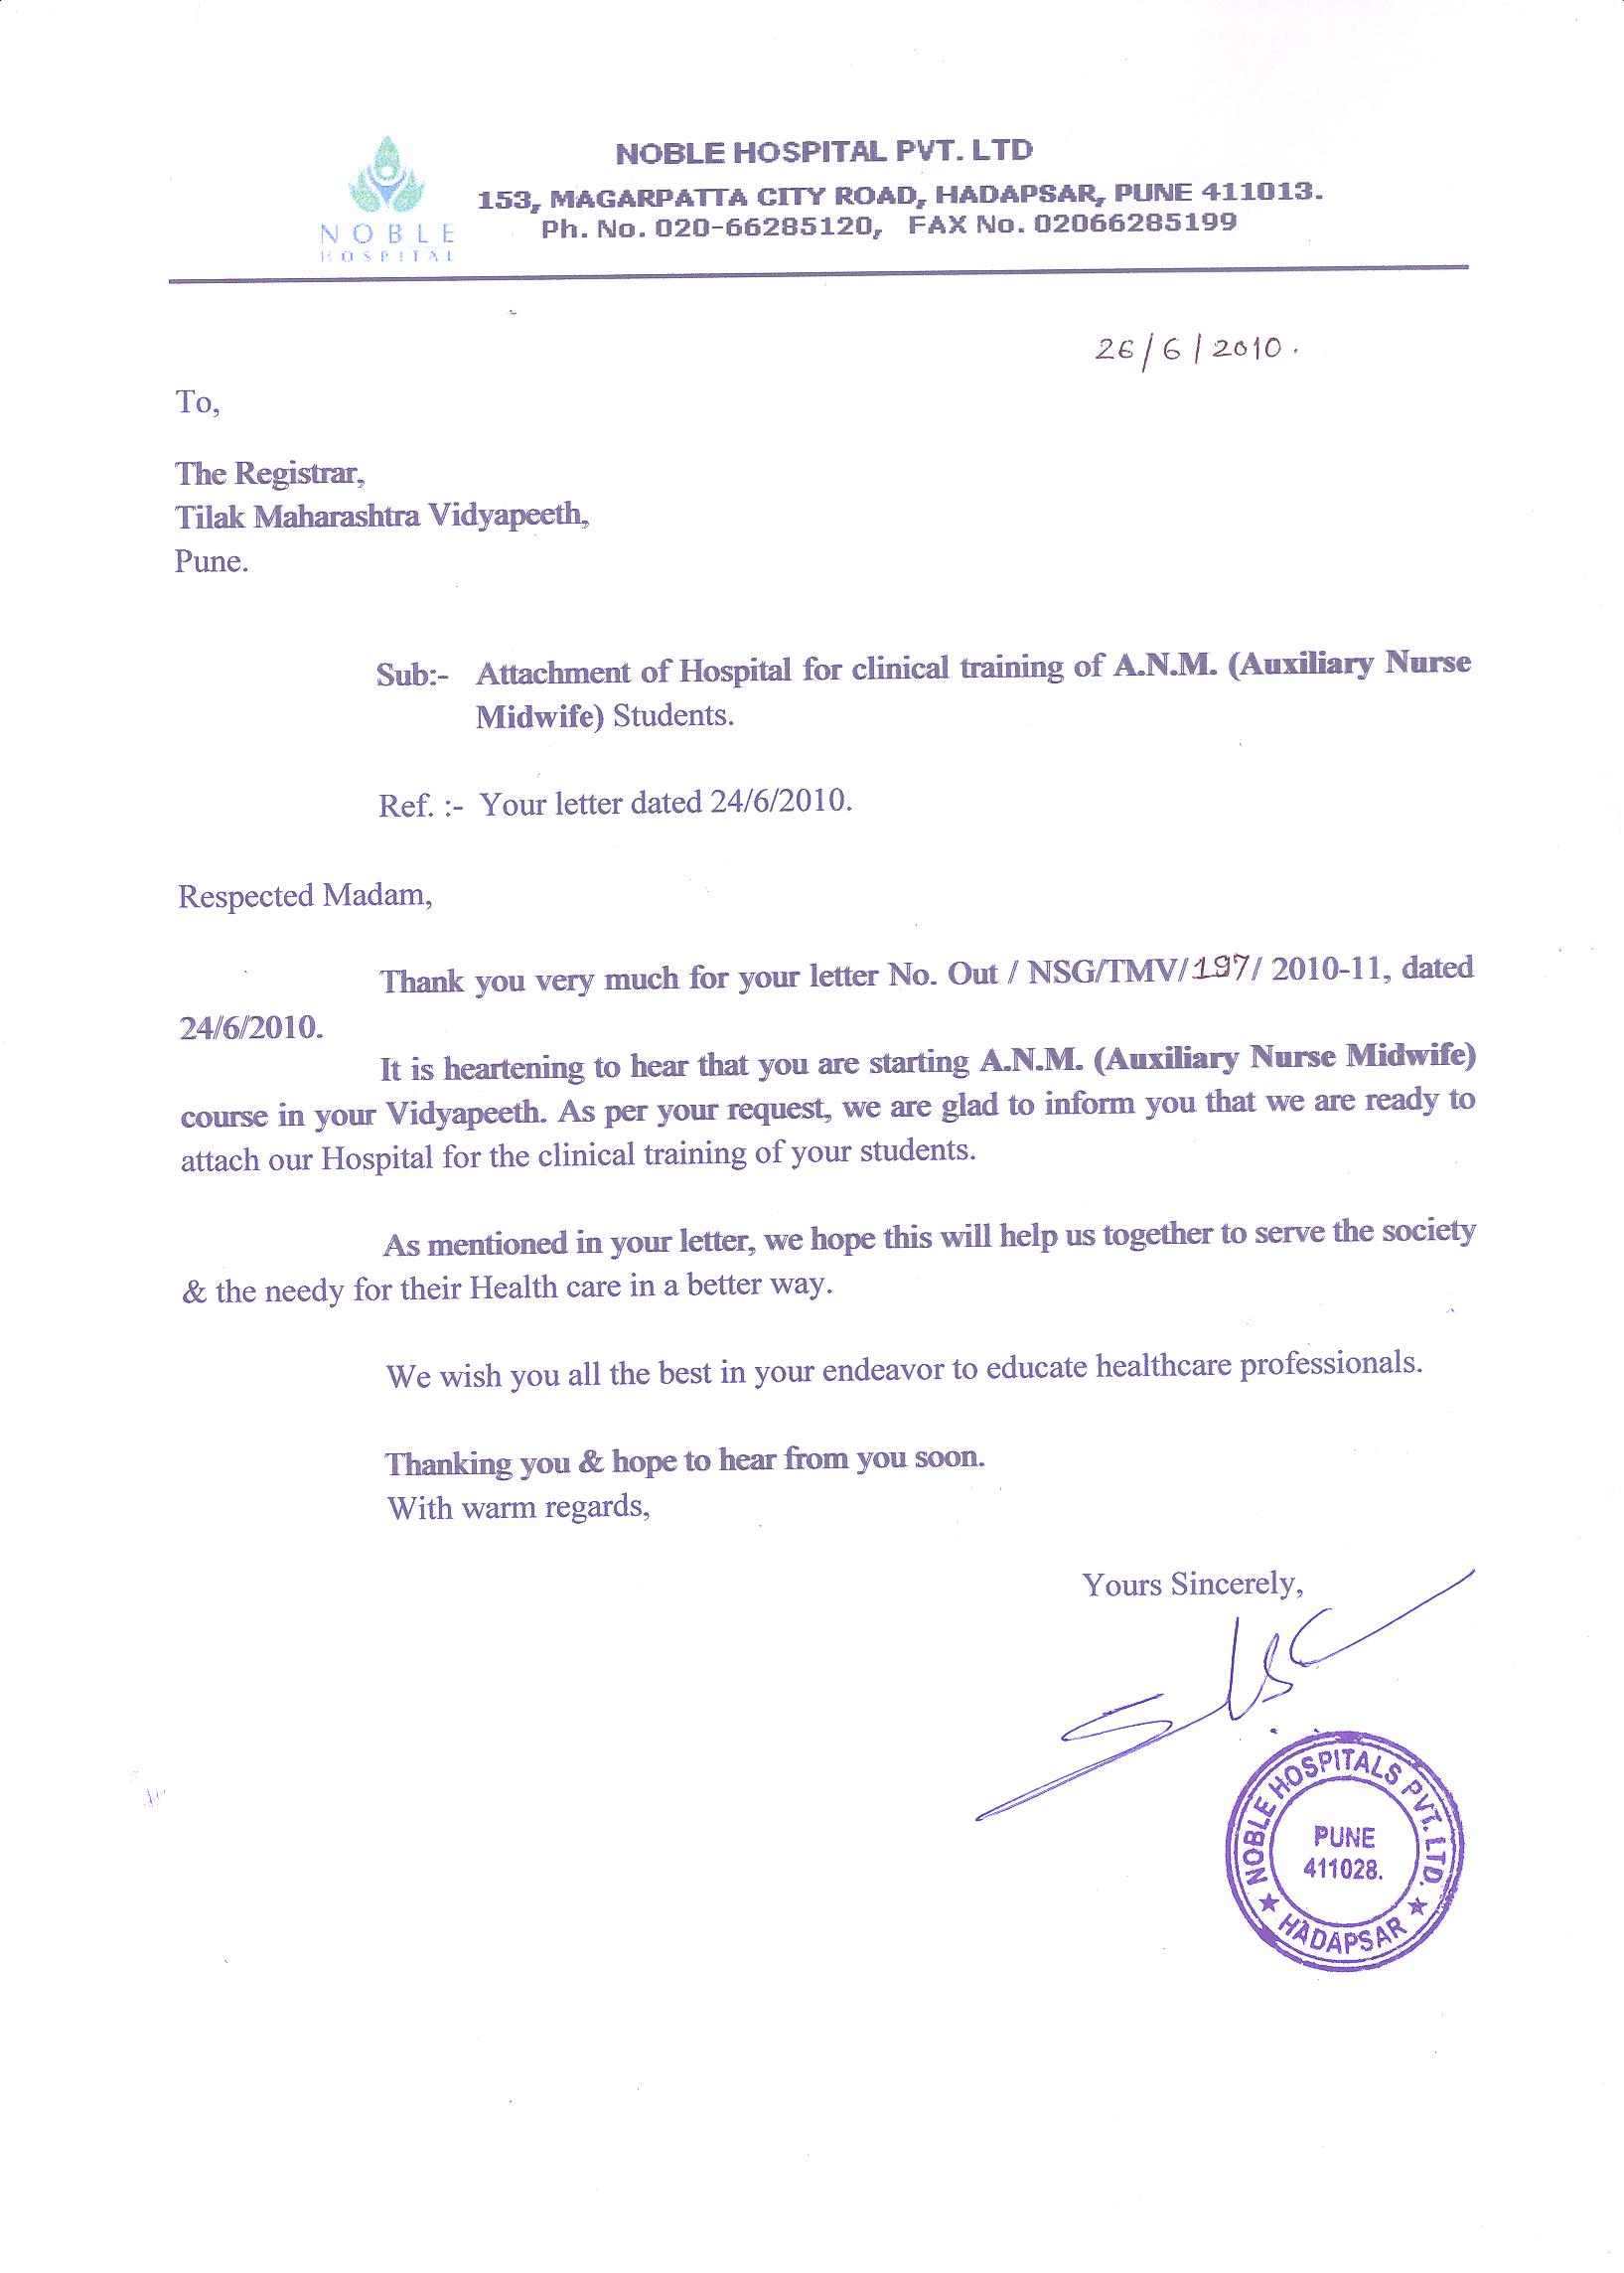 Tilak maharashtra vidyapeeth permission of noble for anm spiritdancerdesigns Gallery